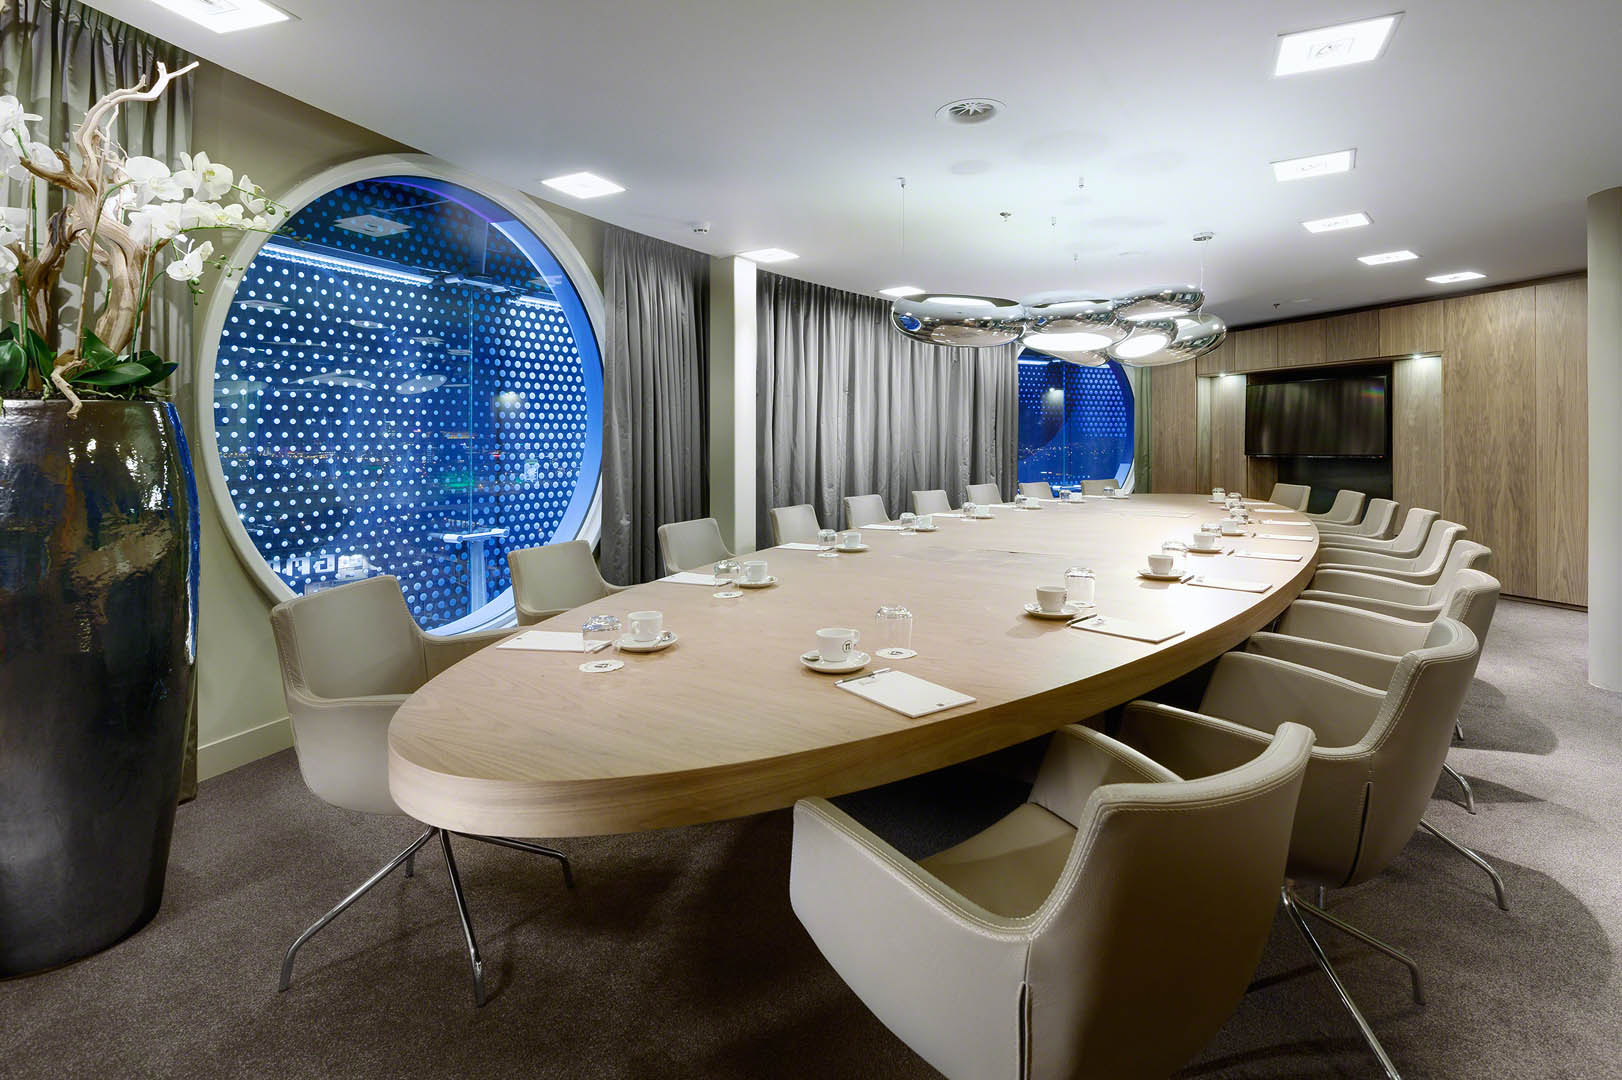 Luxurious boardroom design with an interior whose use of colour and walnut details are inspired by the natural world.